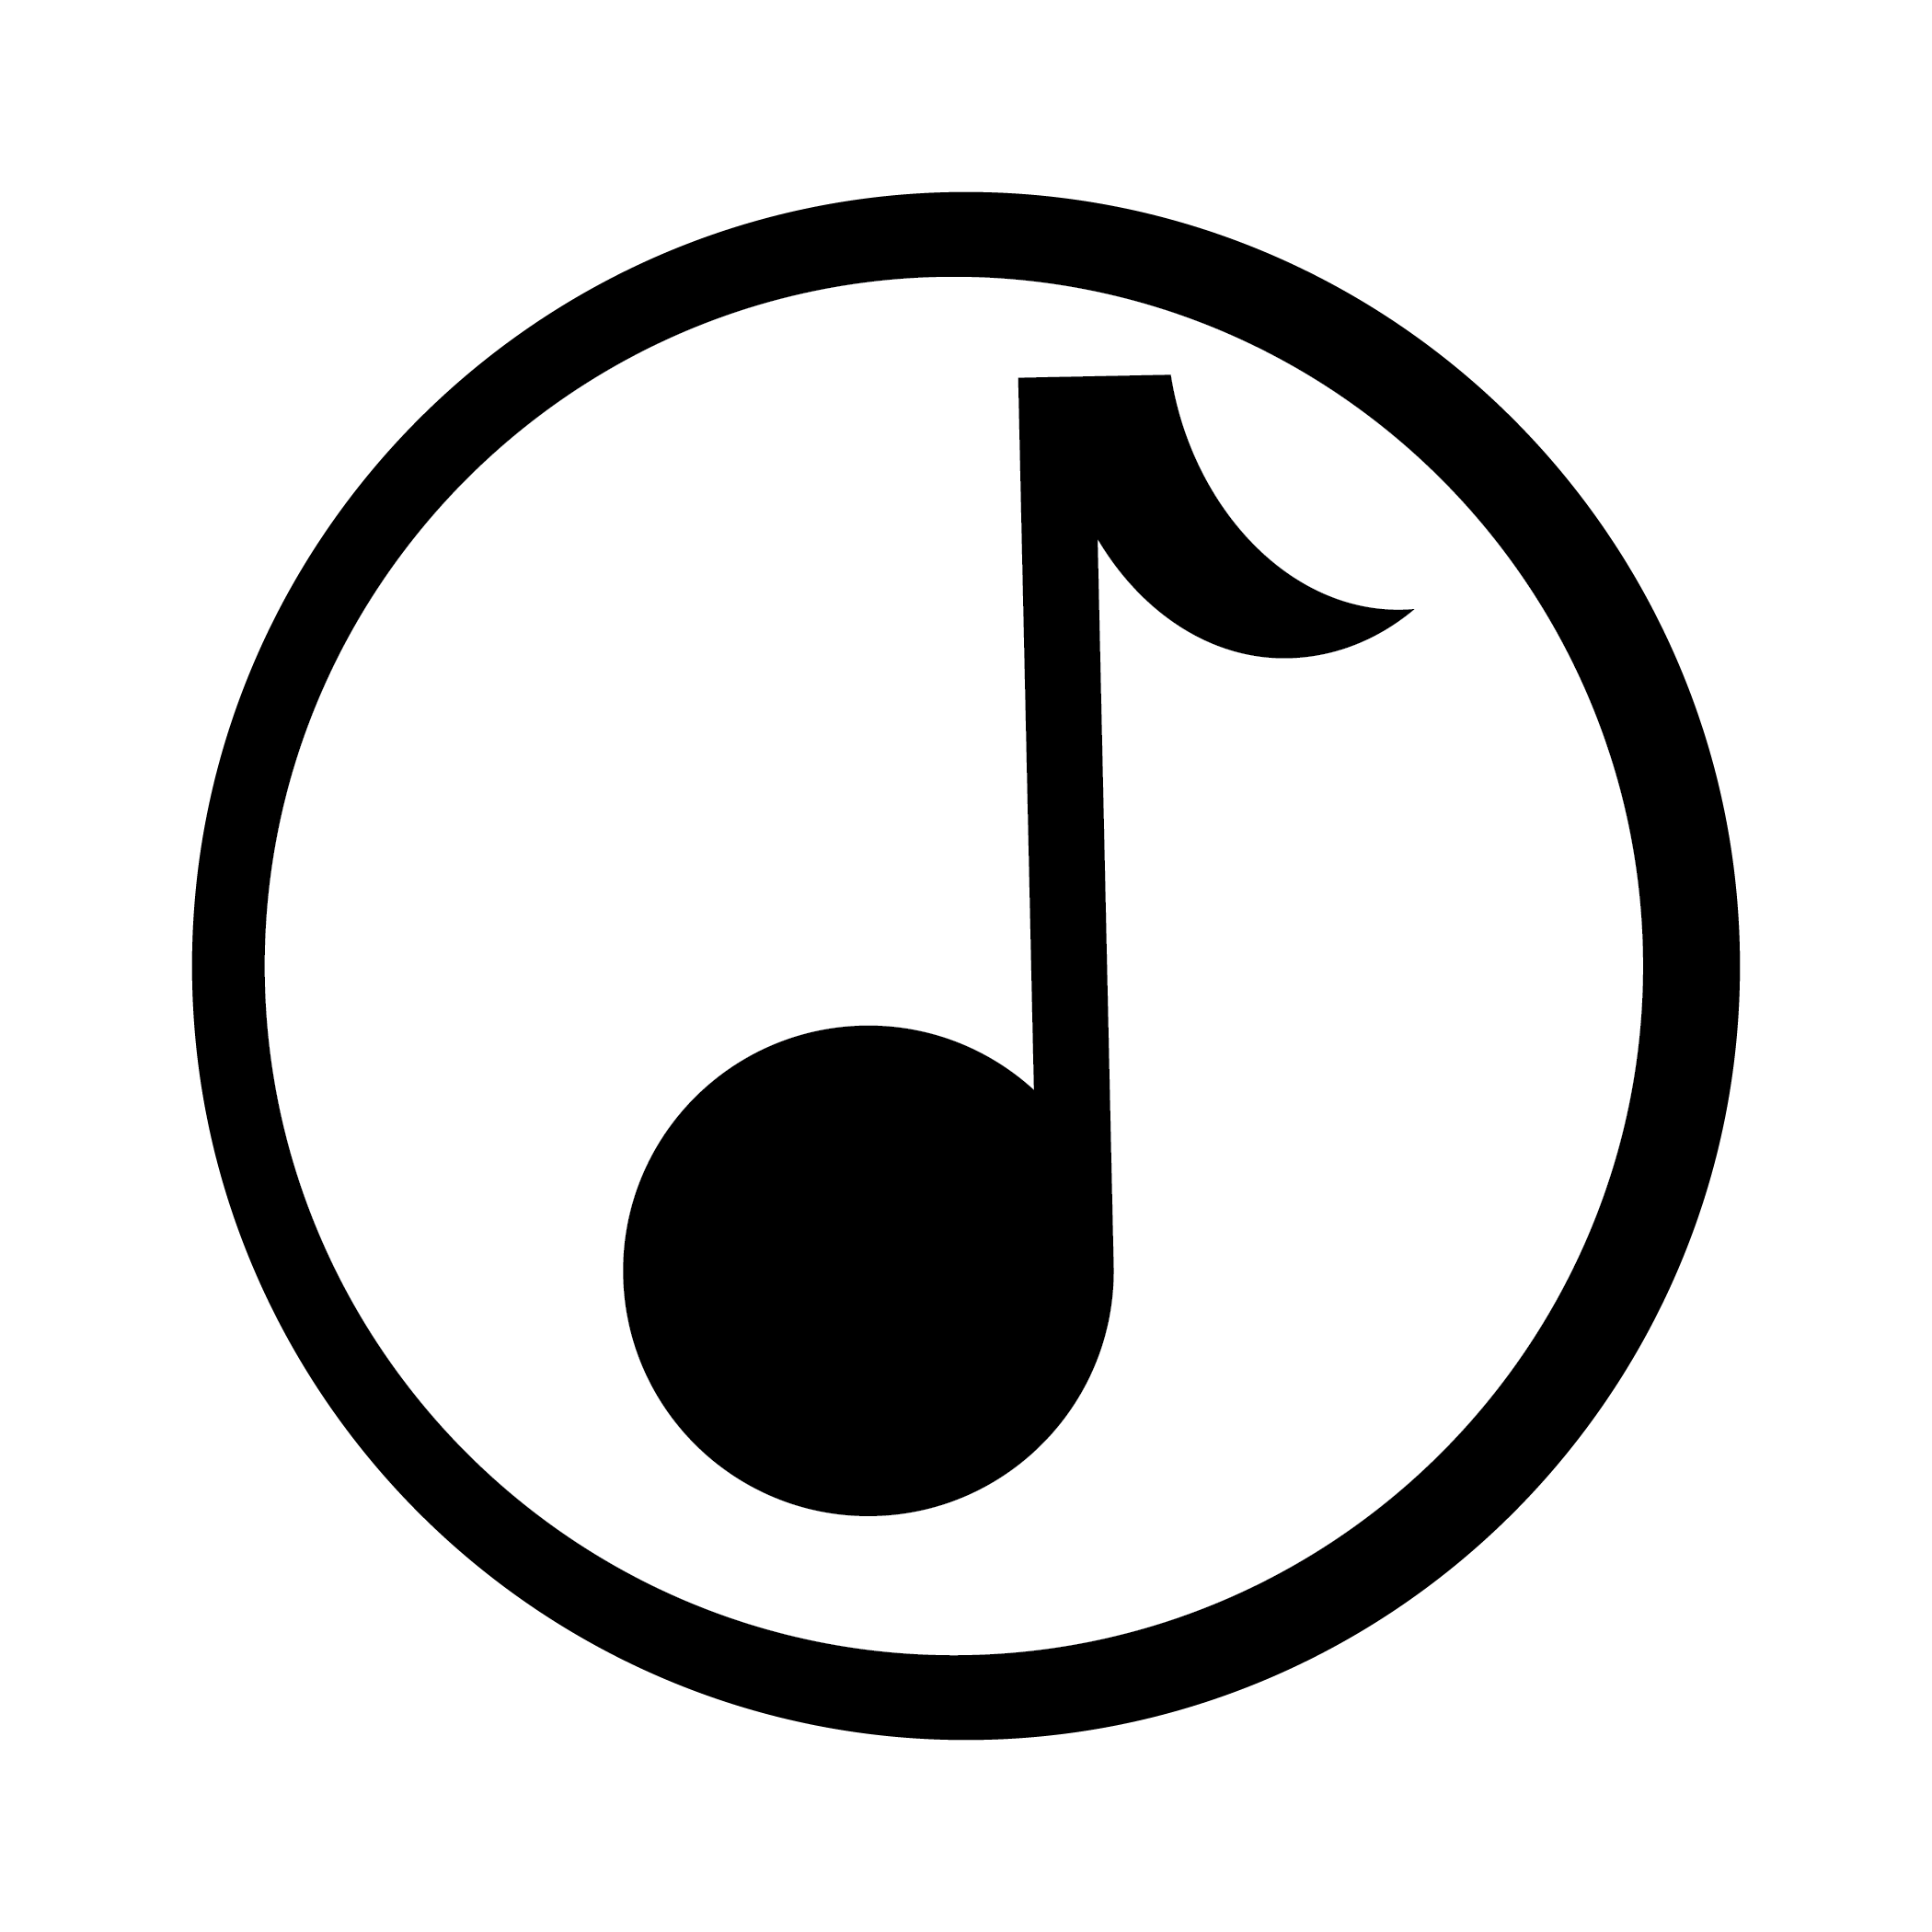 kindermusik-musicnote_icon_blkcirclering